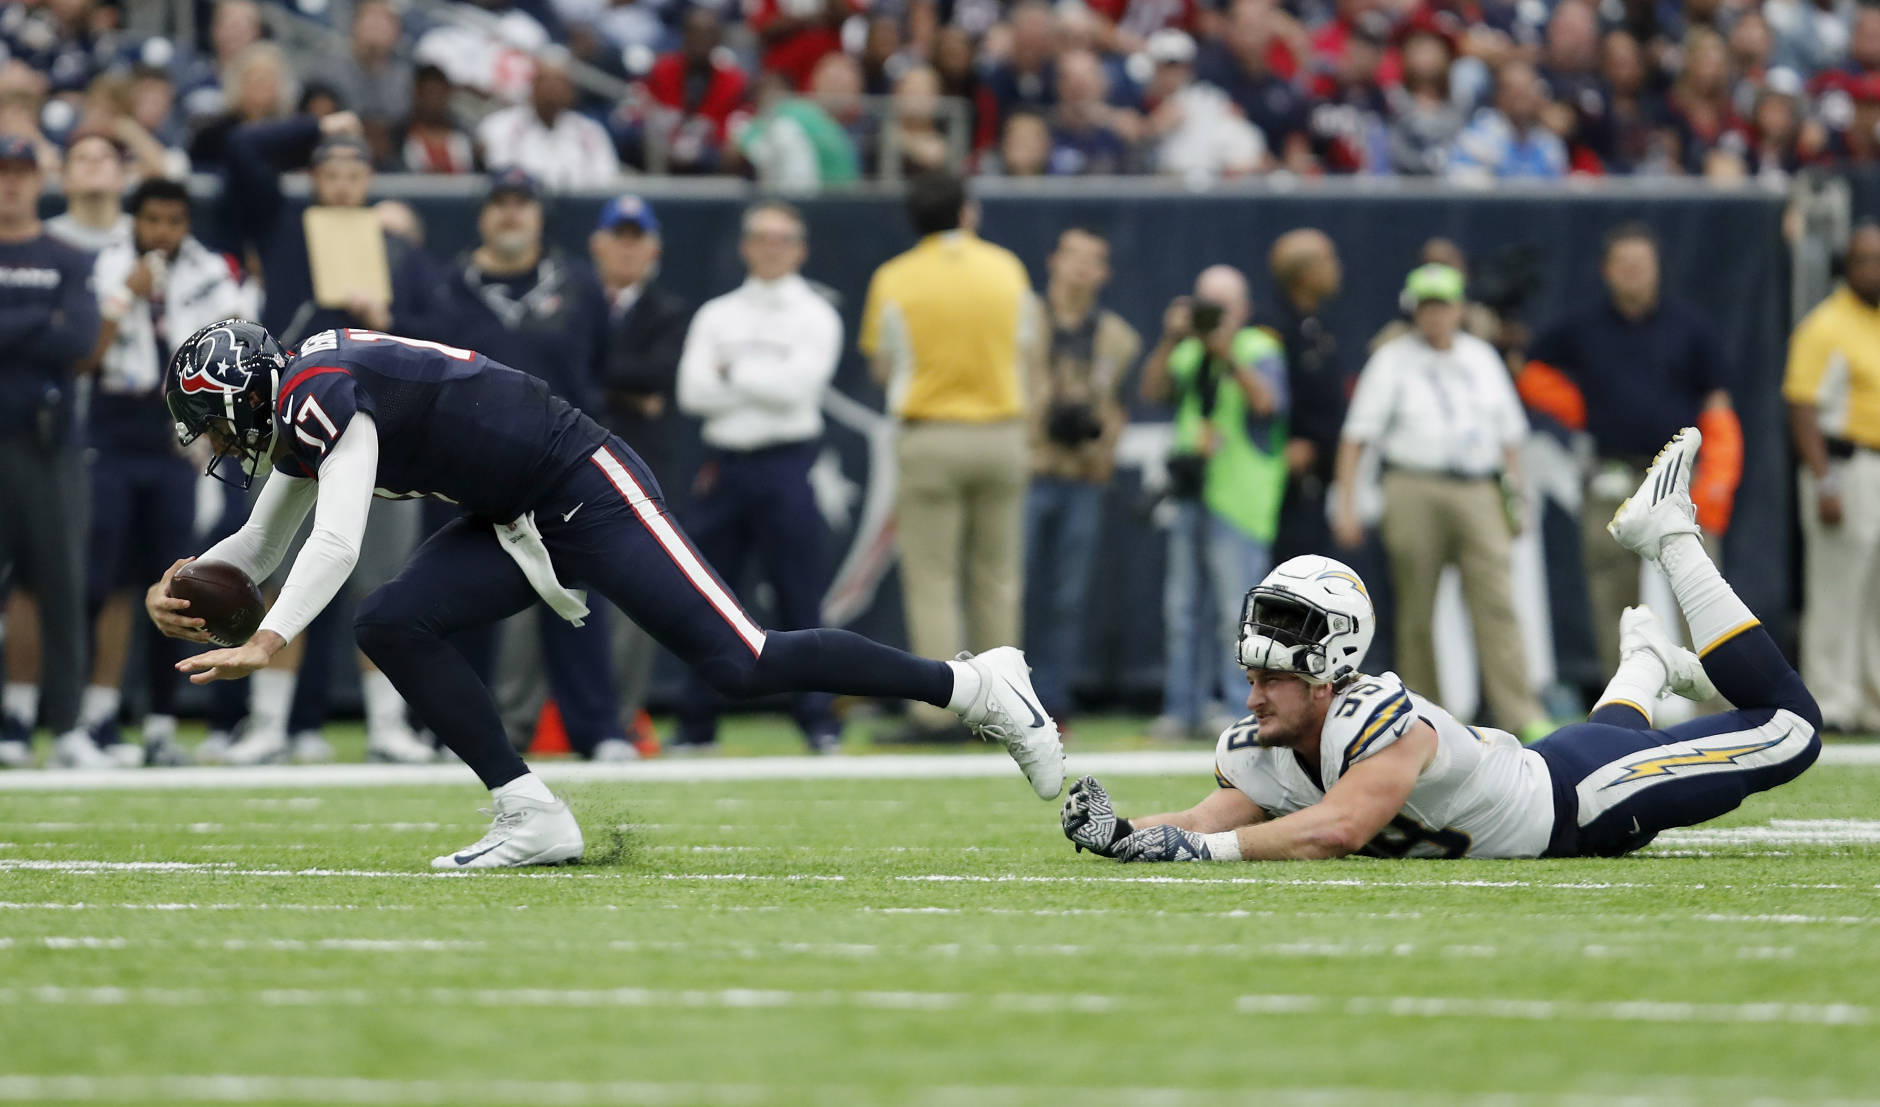 HOUSTON, TX - NOVEMBER 27:  Joey Bosa #99 of the San Diego Chargers loses his helmet as he trips up Brock Osweiler #17 of the Houston Texans in the fourth quarter at NRG Stadium on November 27, 2016 in Houston, Texas.  (Photo by Tim Warner/Getty Images)